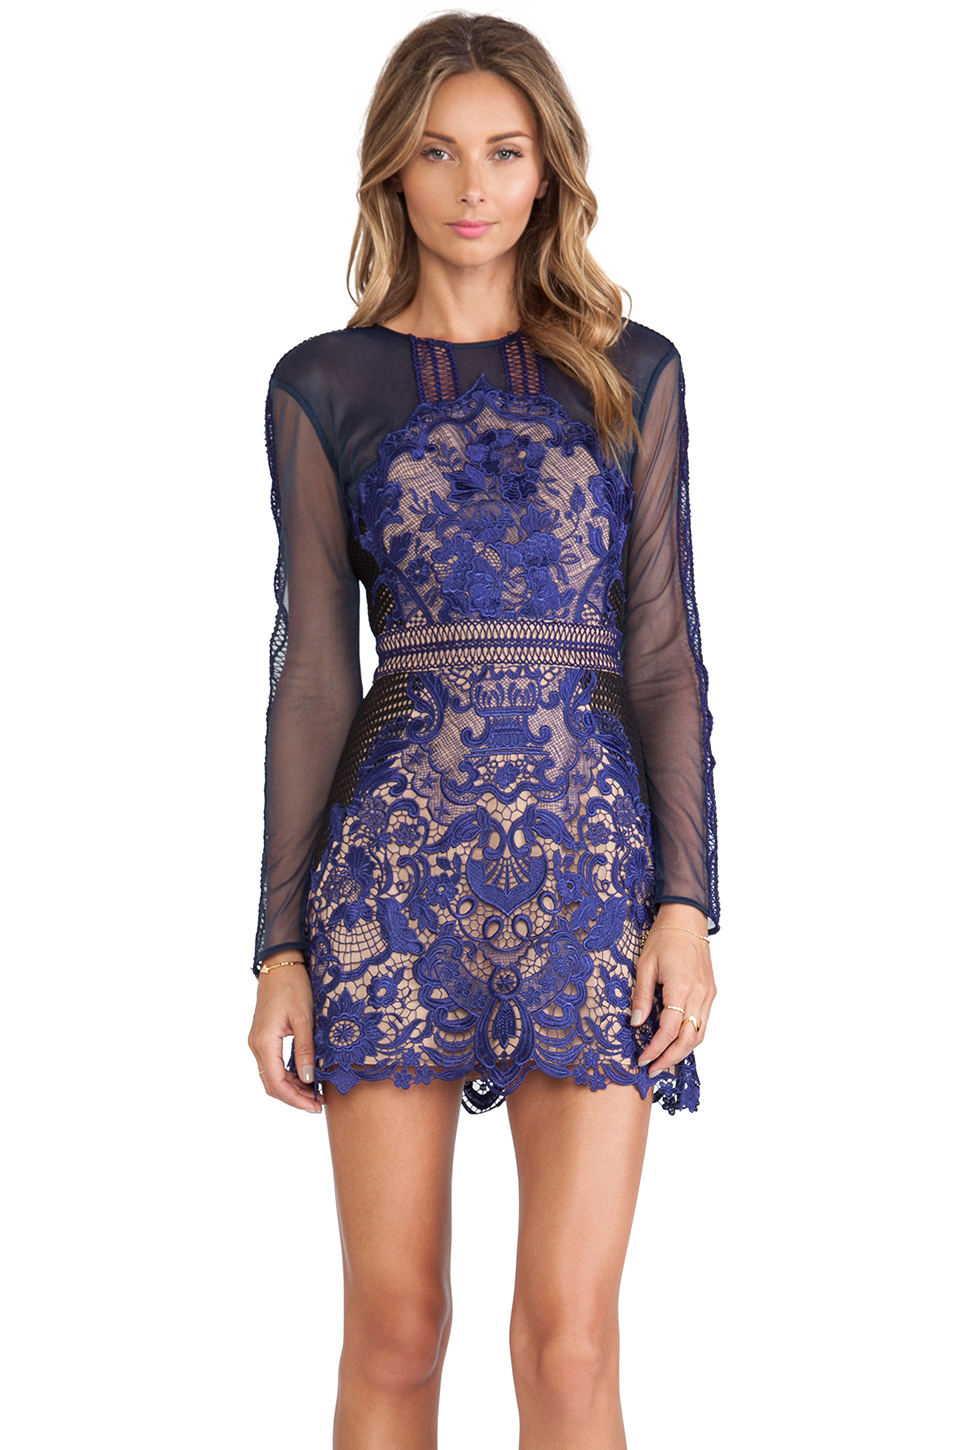 Portrait athanasia dress in blue from revolveclothing.com